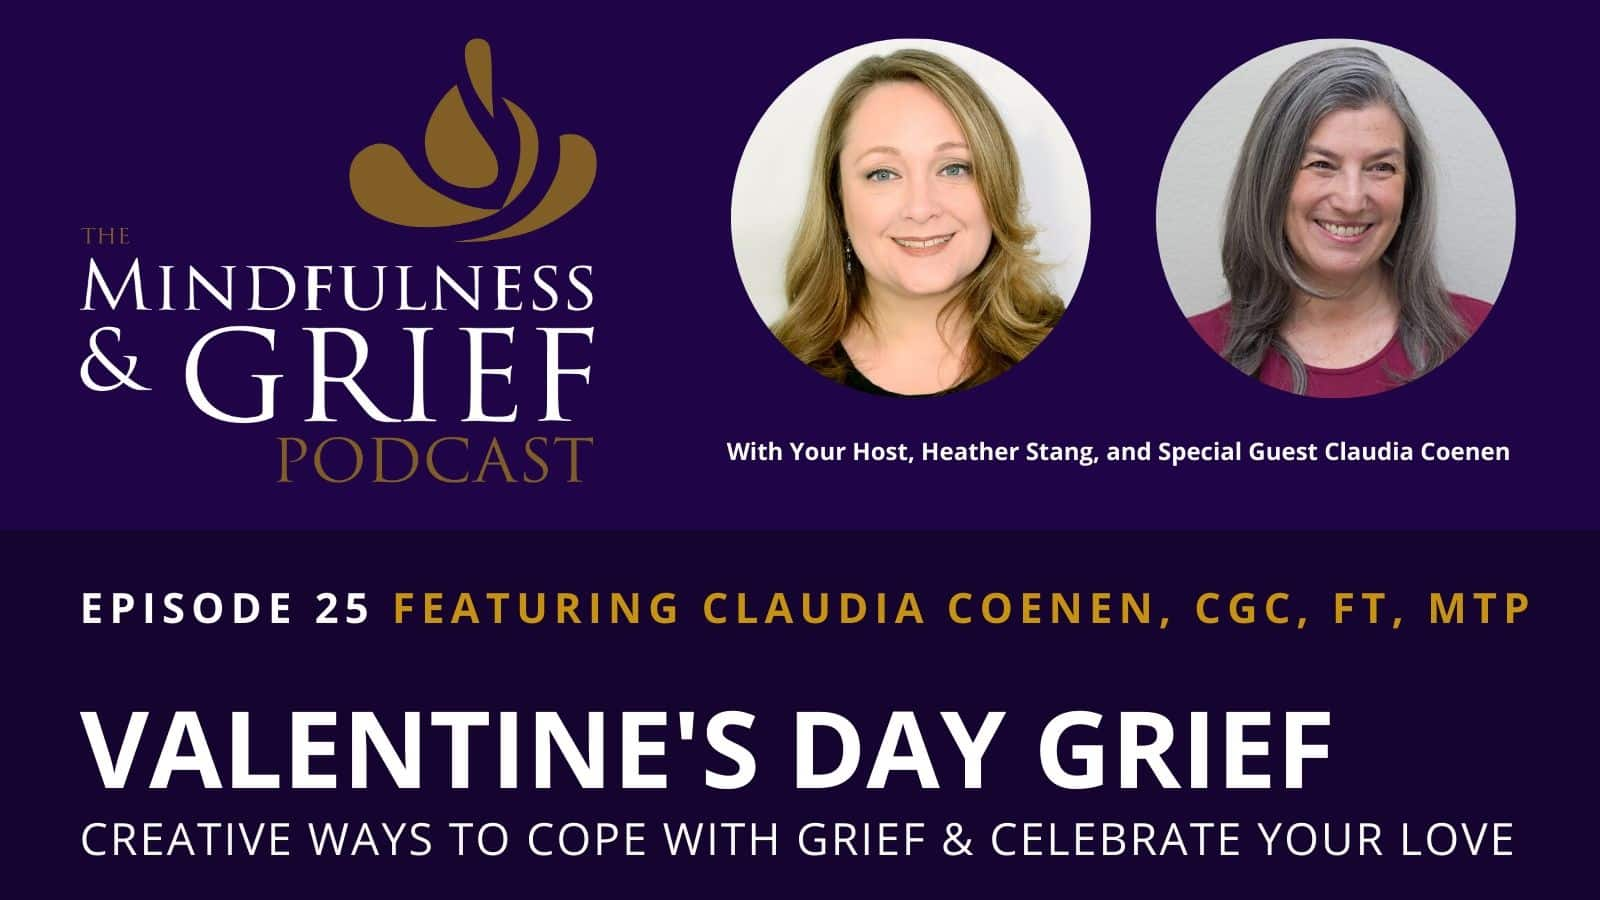 valentines day grief mindfulness grief podcast 25 claudia coenen widescreen